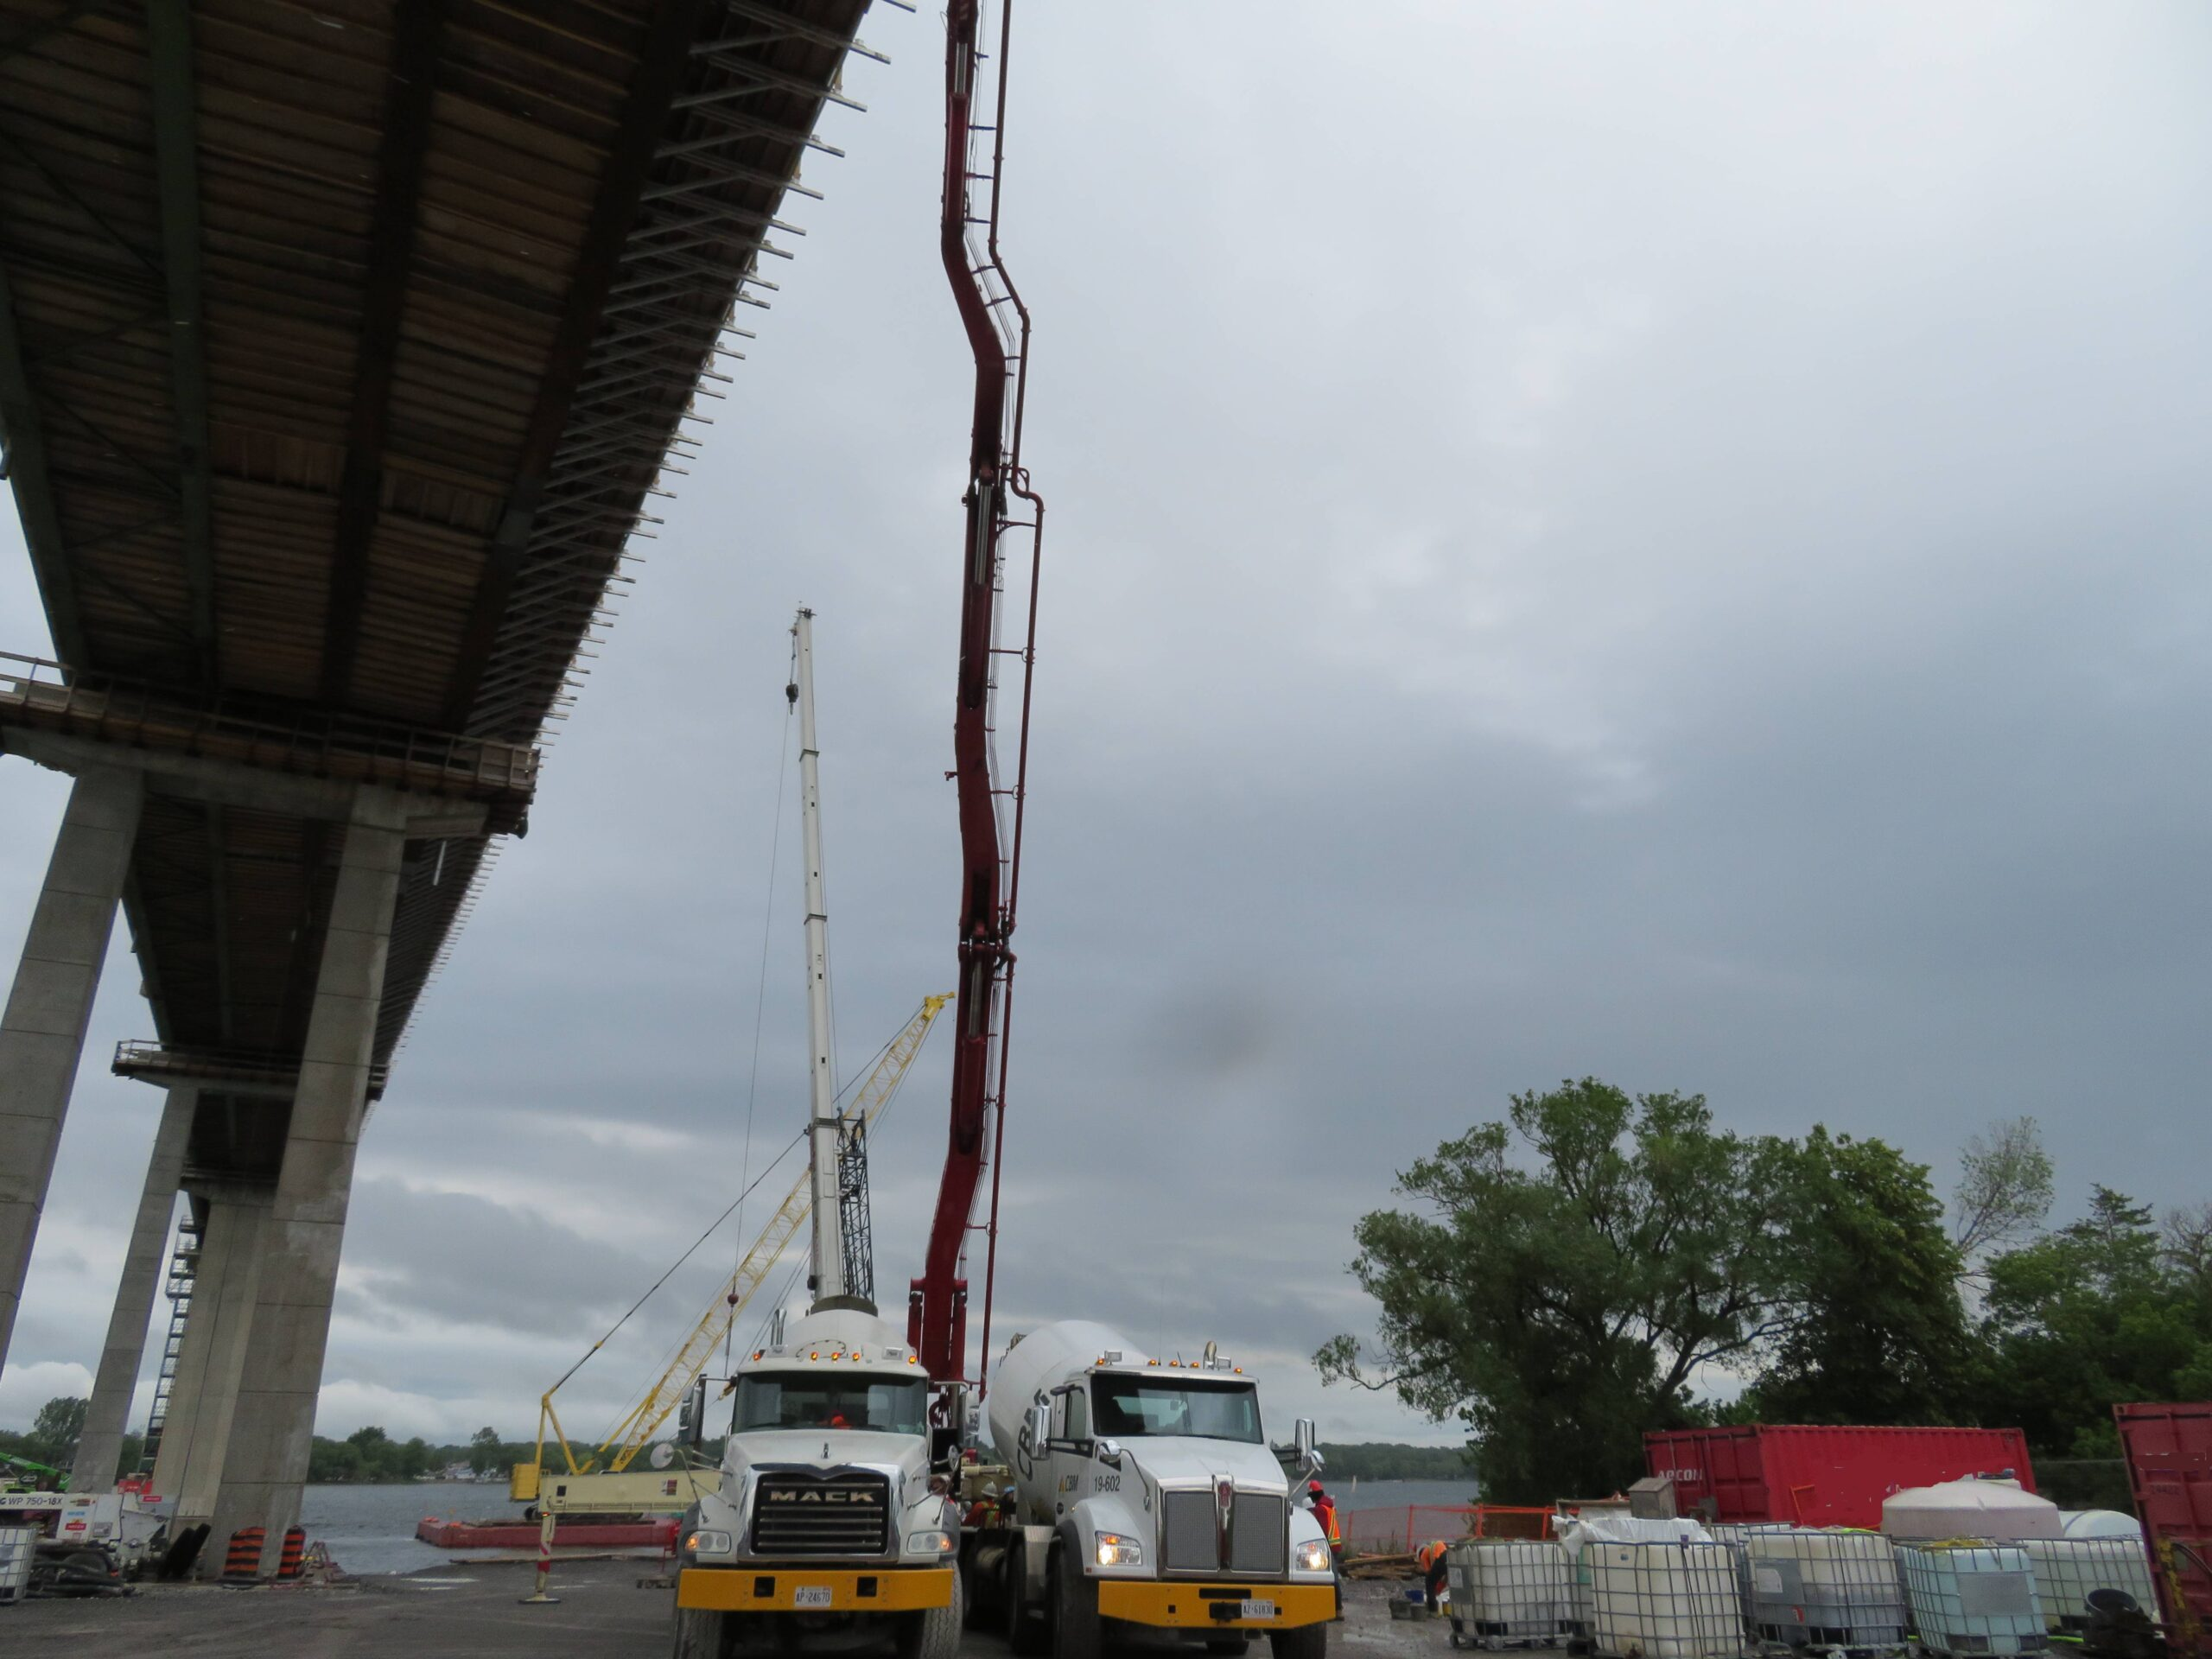 Overview from below of the bridge, concrete trucks and pump